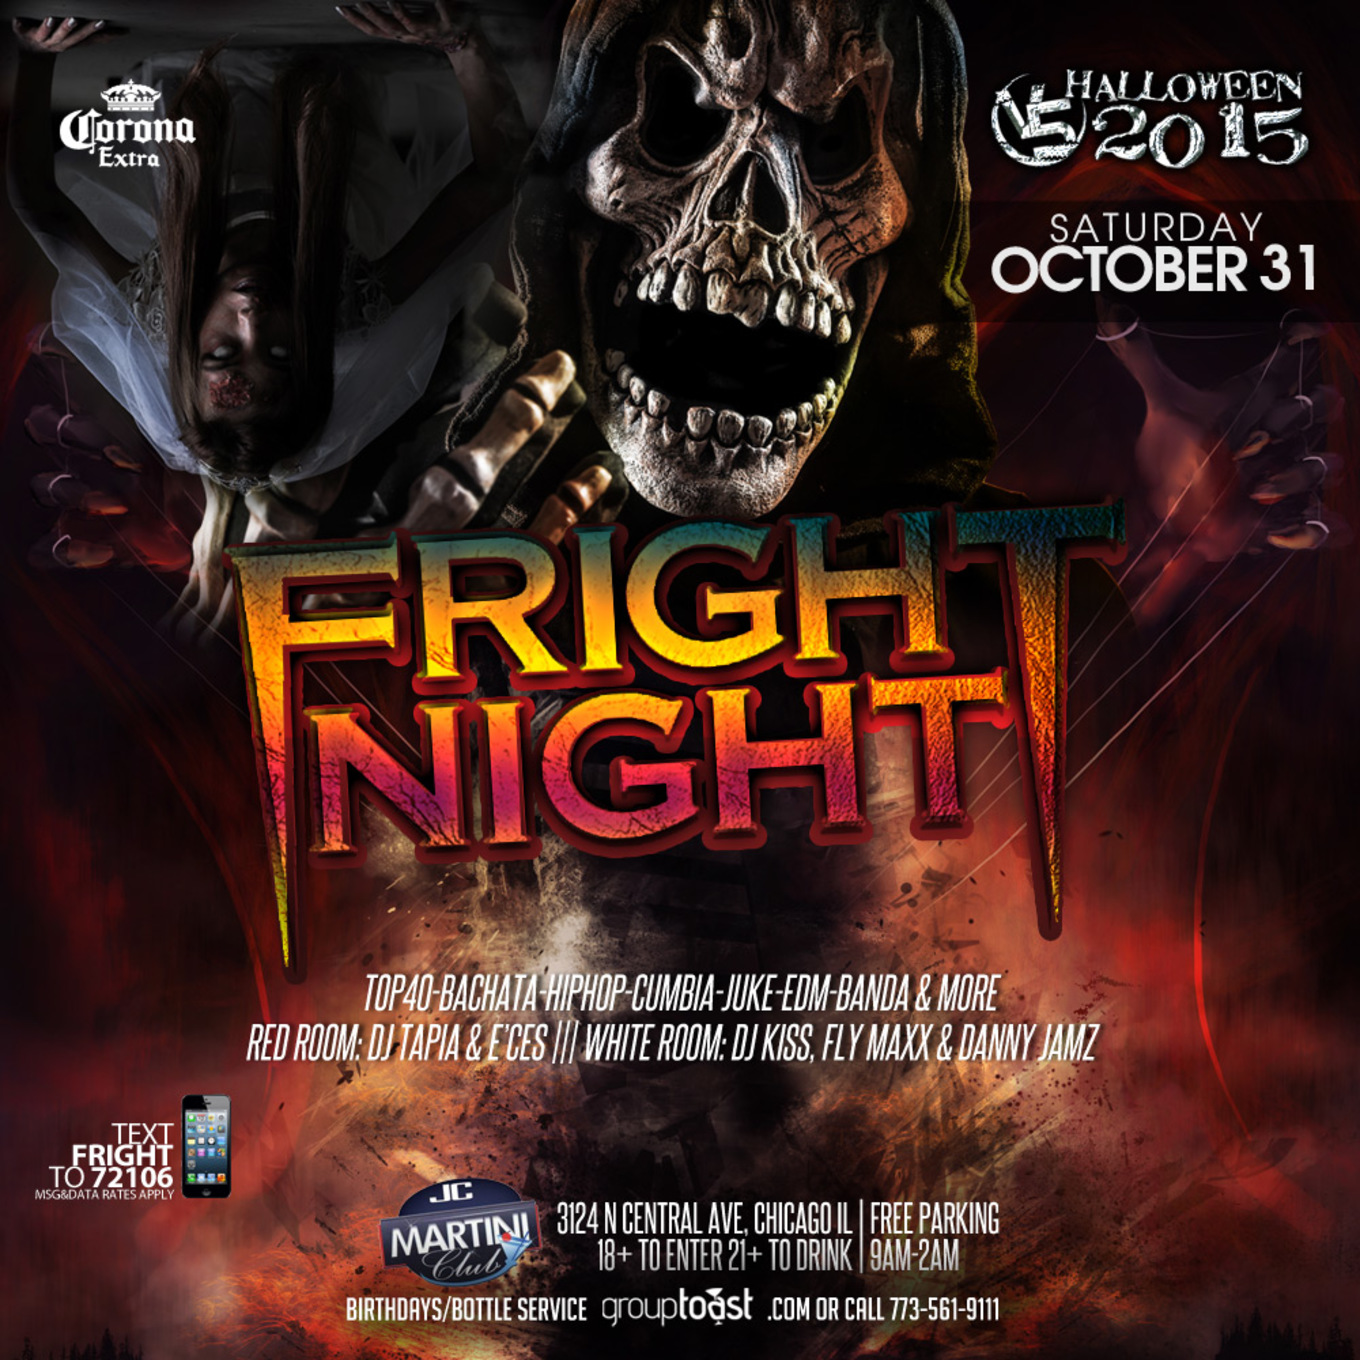 FRIGHT NIGHT at Martini Club - Tickets - Martini Club